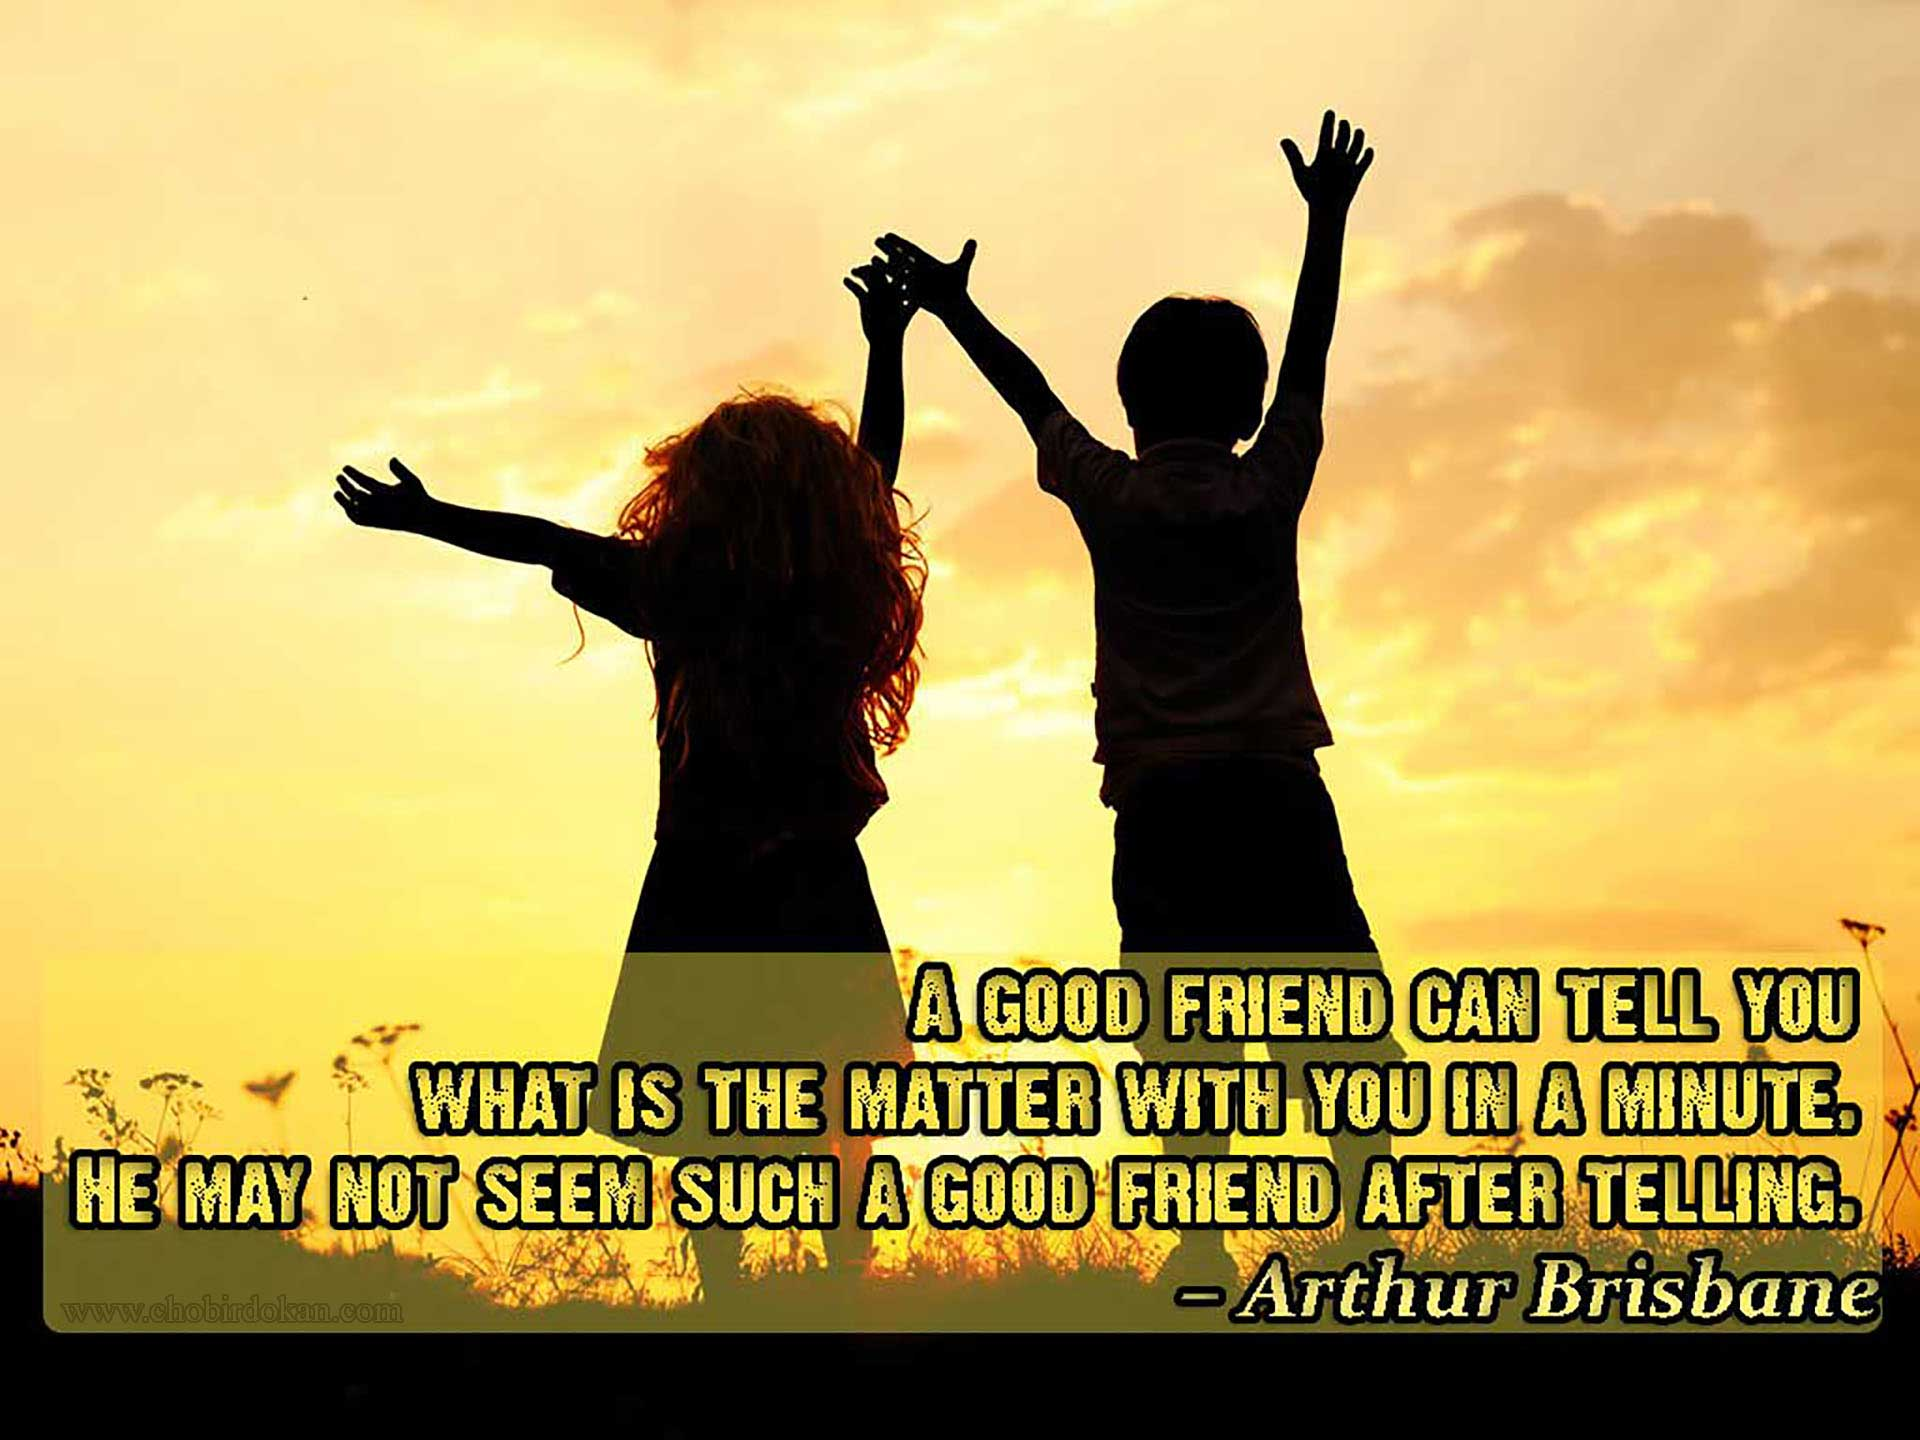 a good friend can tell you what is the matter with you in a minute. he may not seem such a good friend after telling Arthur brisbane